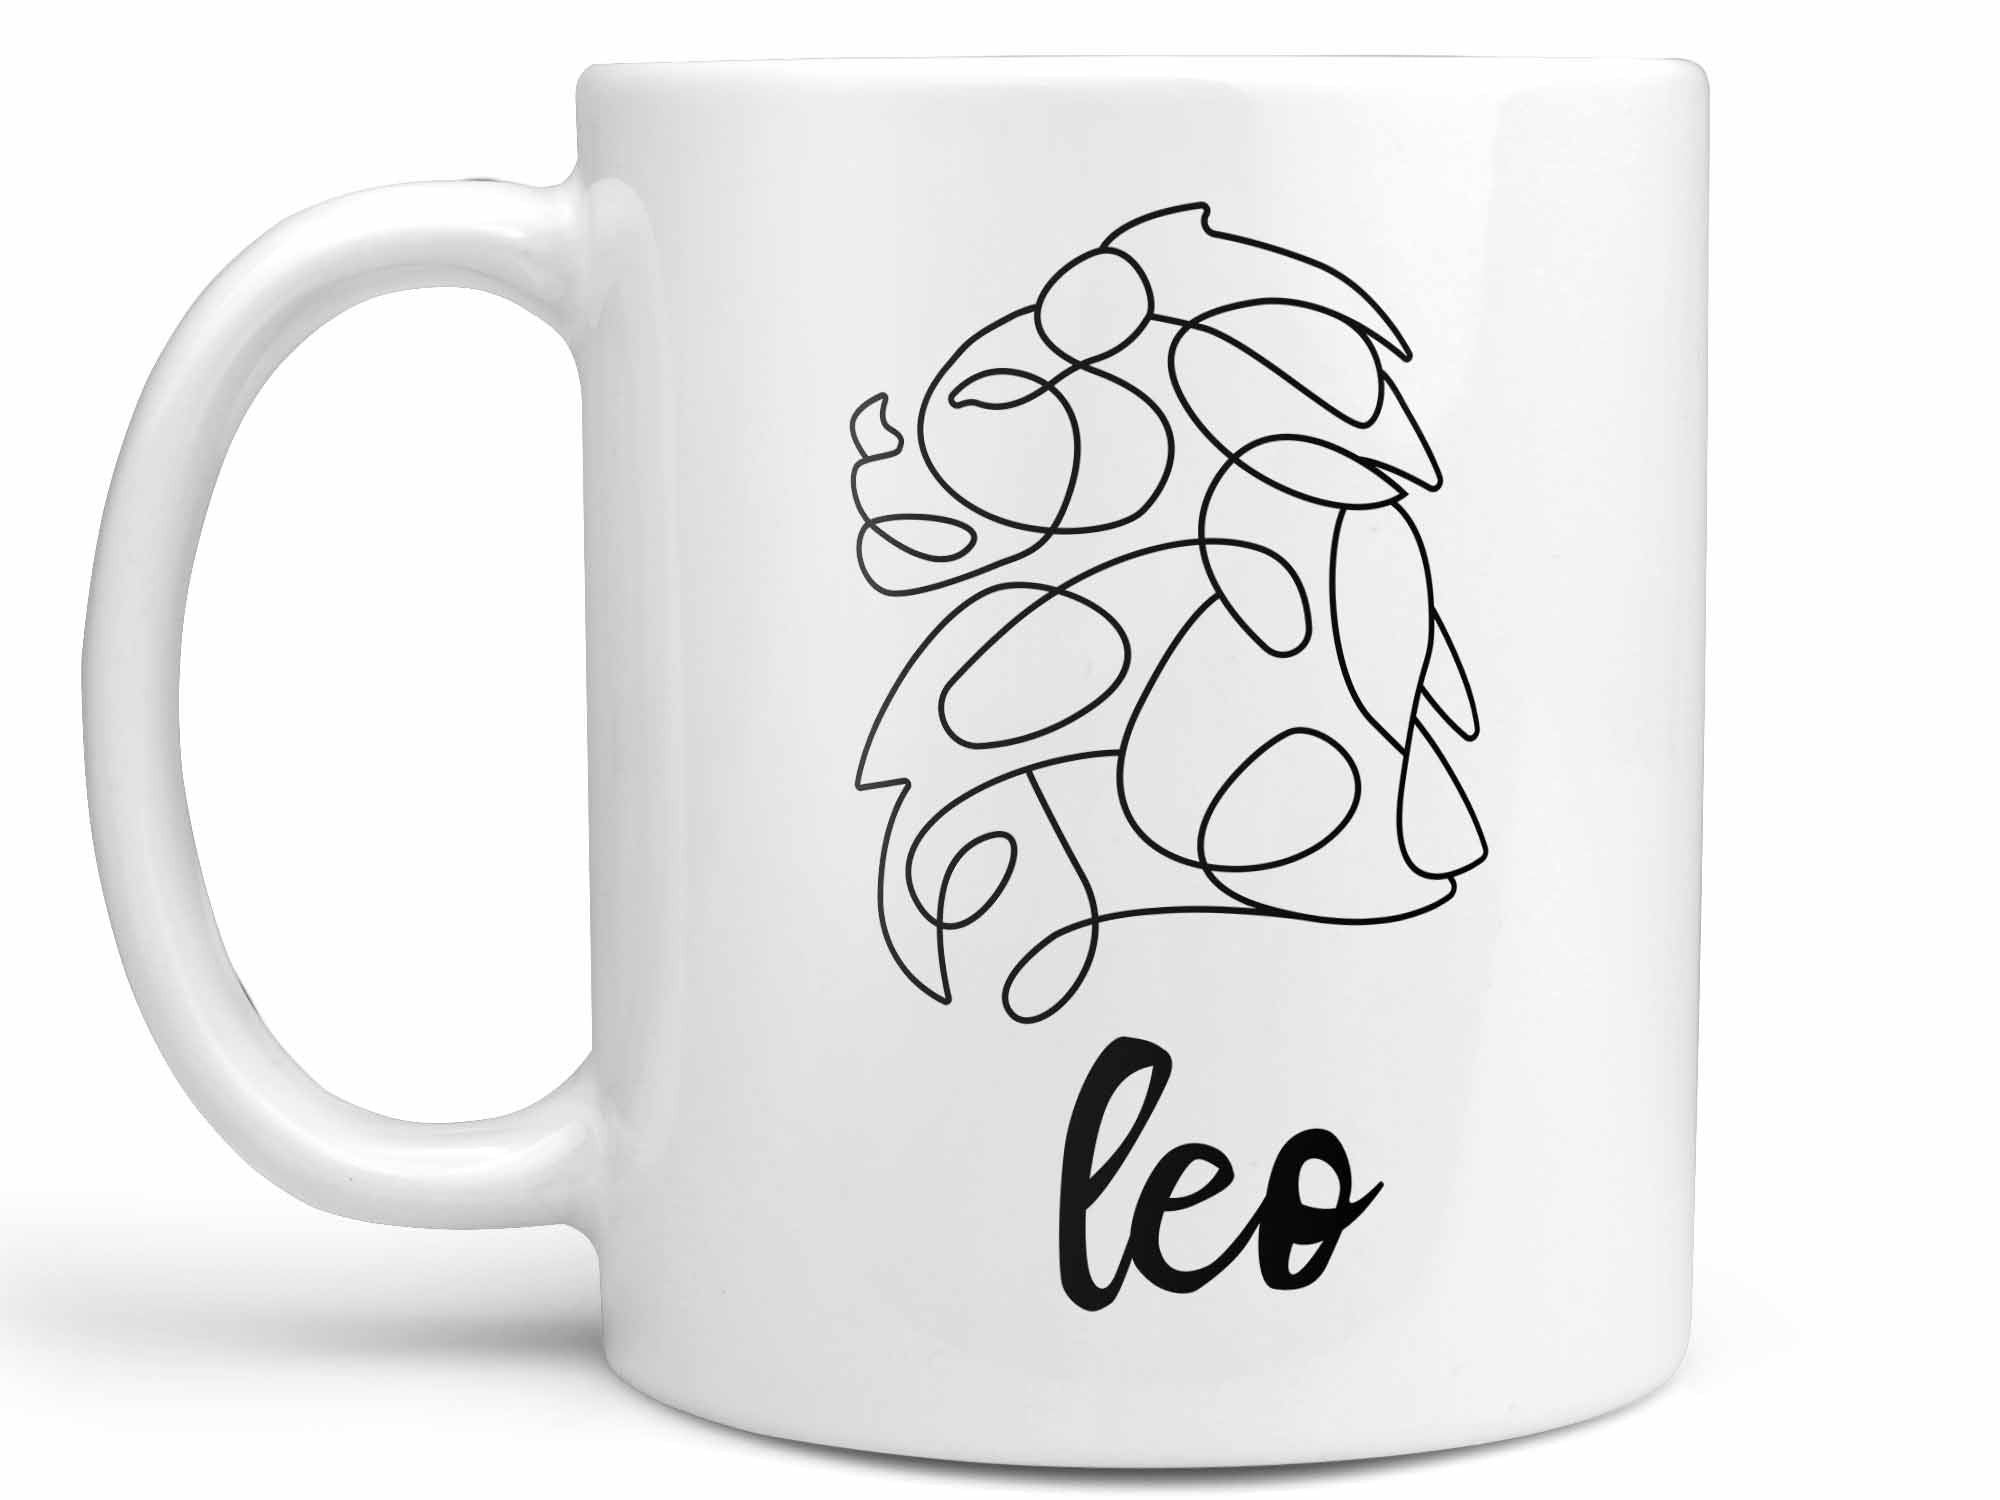 Leo Coffee Mug,Coffee Mugs Never Lie,Coffee Mug